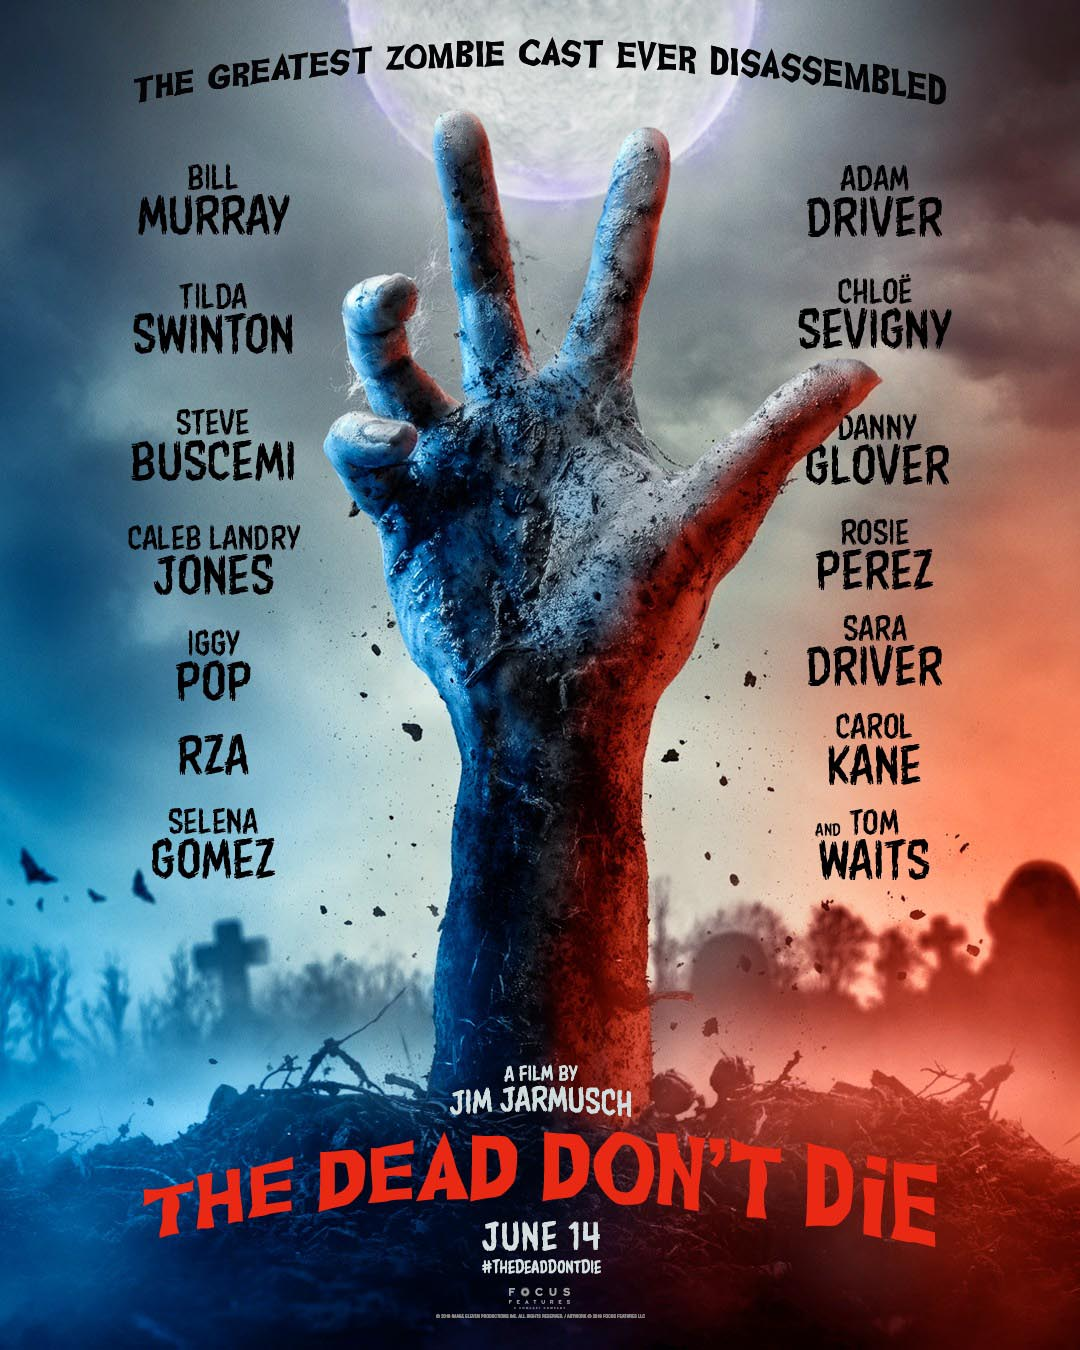 The Dead Don't Die comedy horror (2019) Movie Free Online